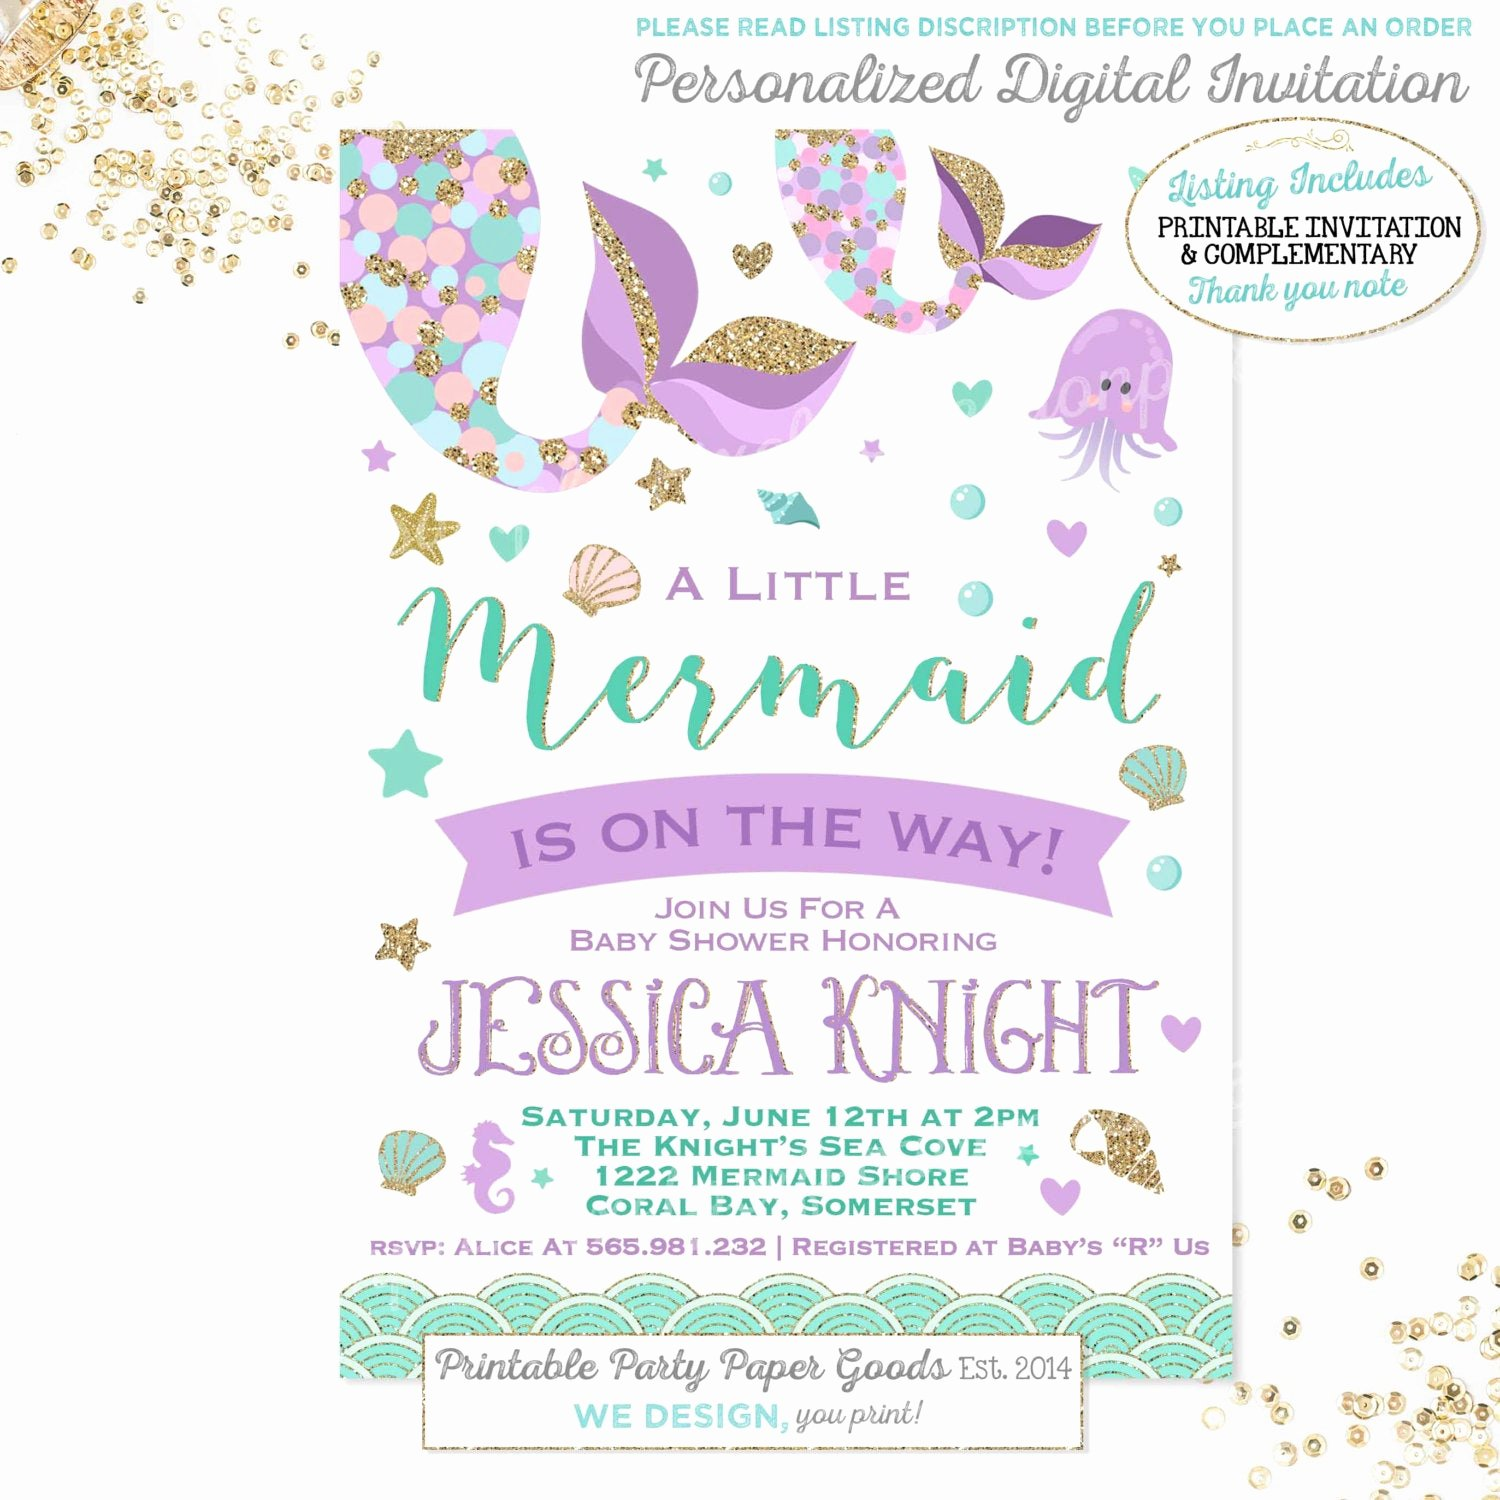 Mermaid Baby Shower Invitations Lovely Mermaid Baby Shower Invitation Little Mermaid Baby Shower